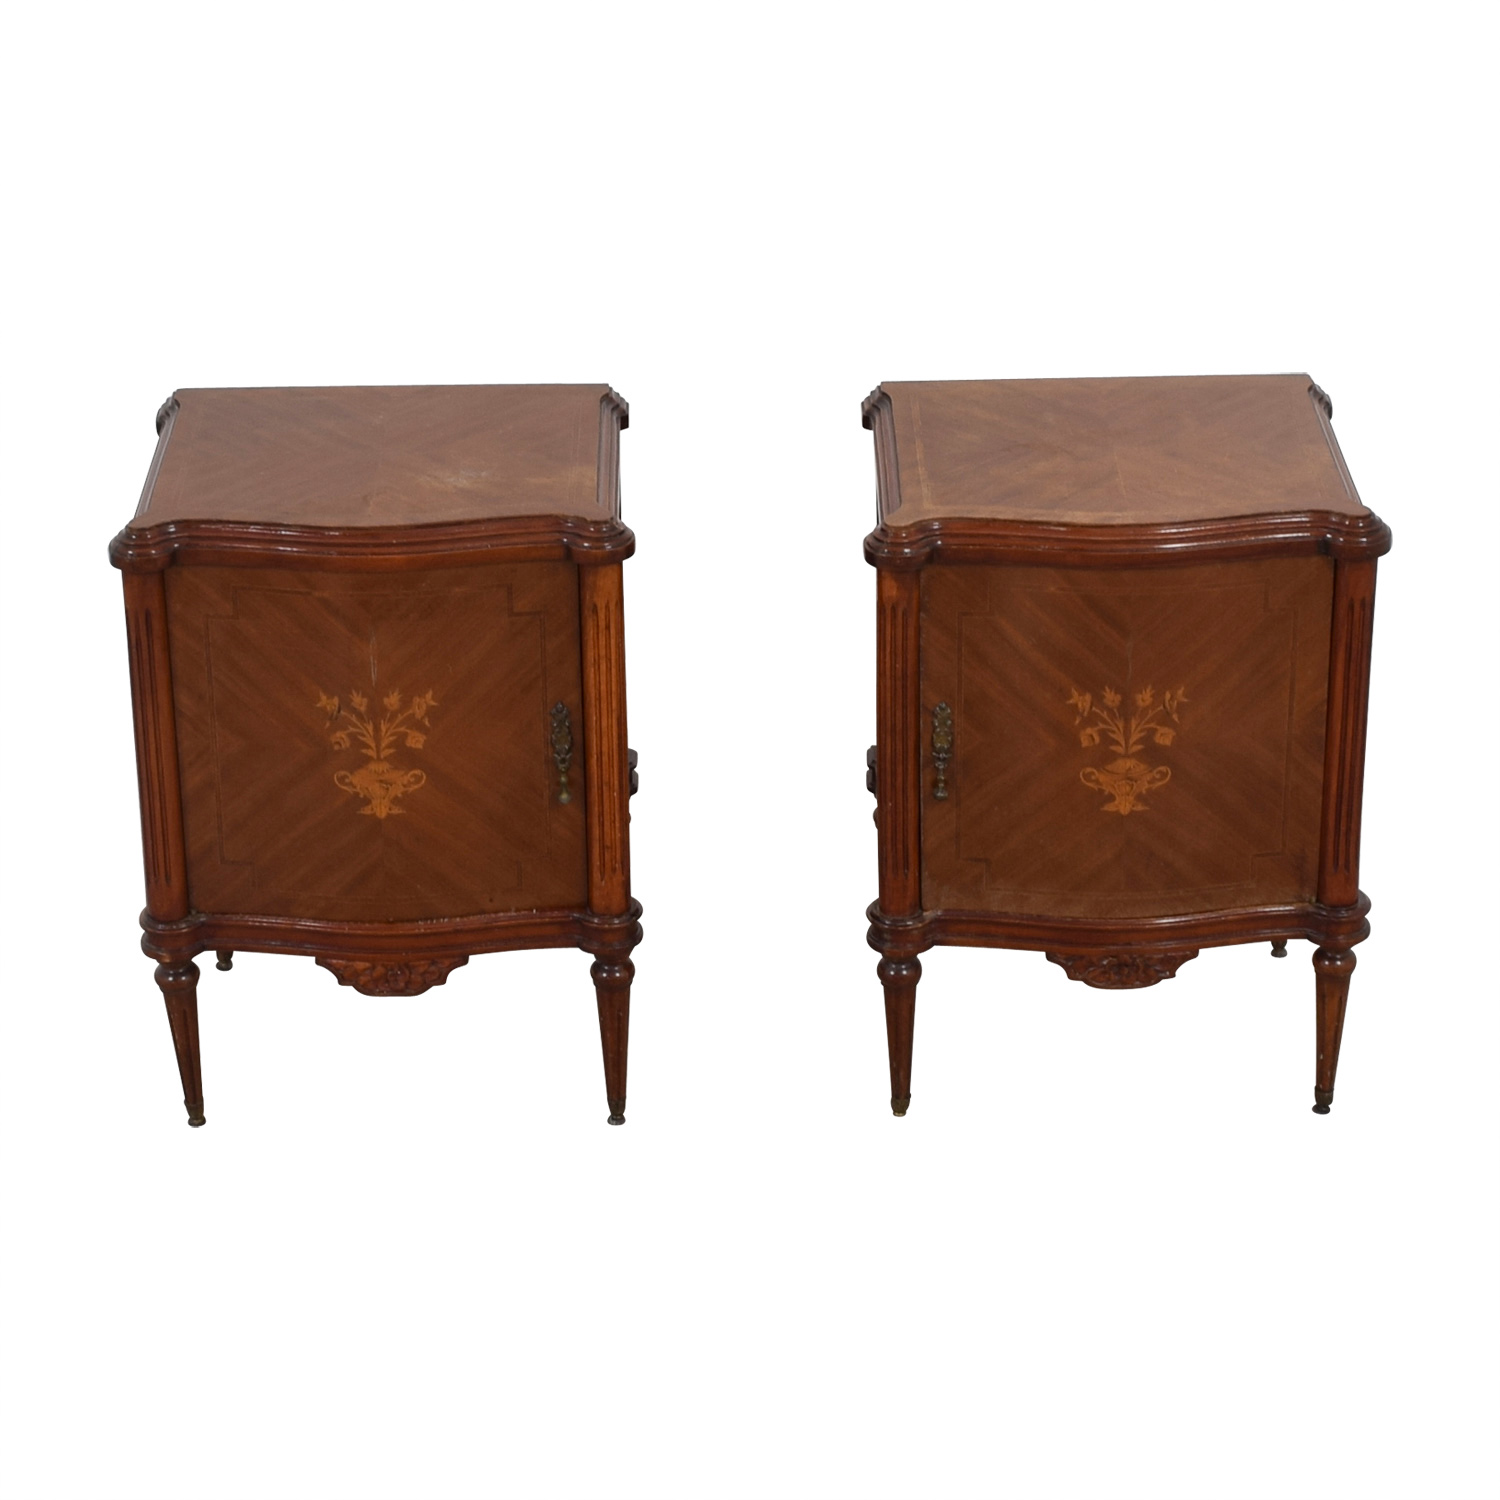 Wooden Nightstands with Inlaid Design End Tables